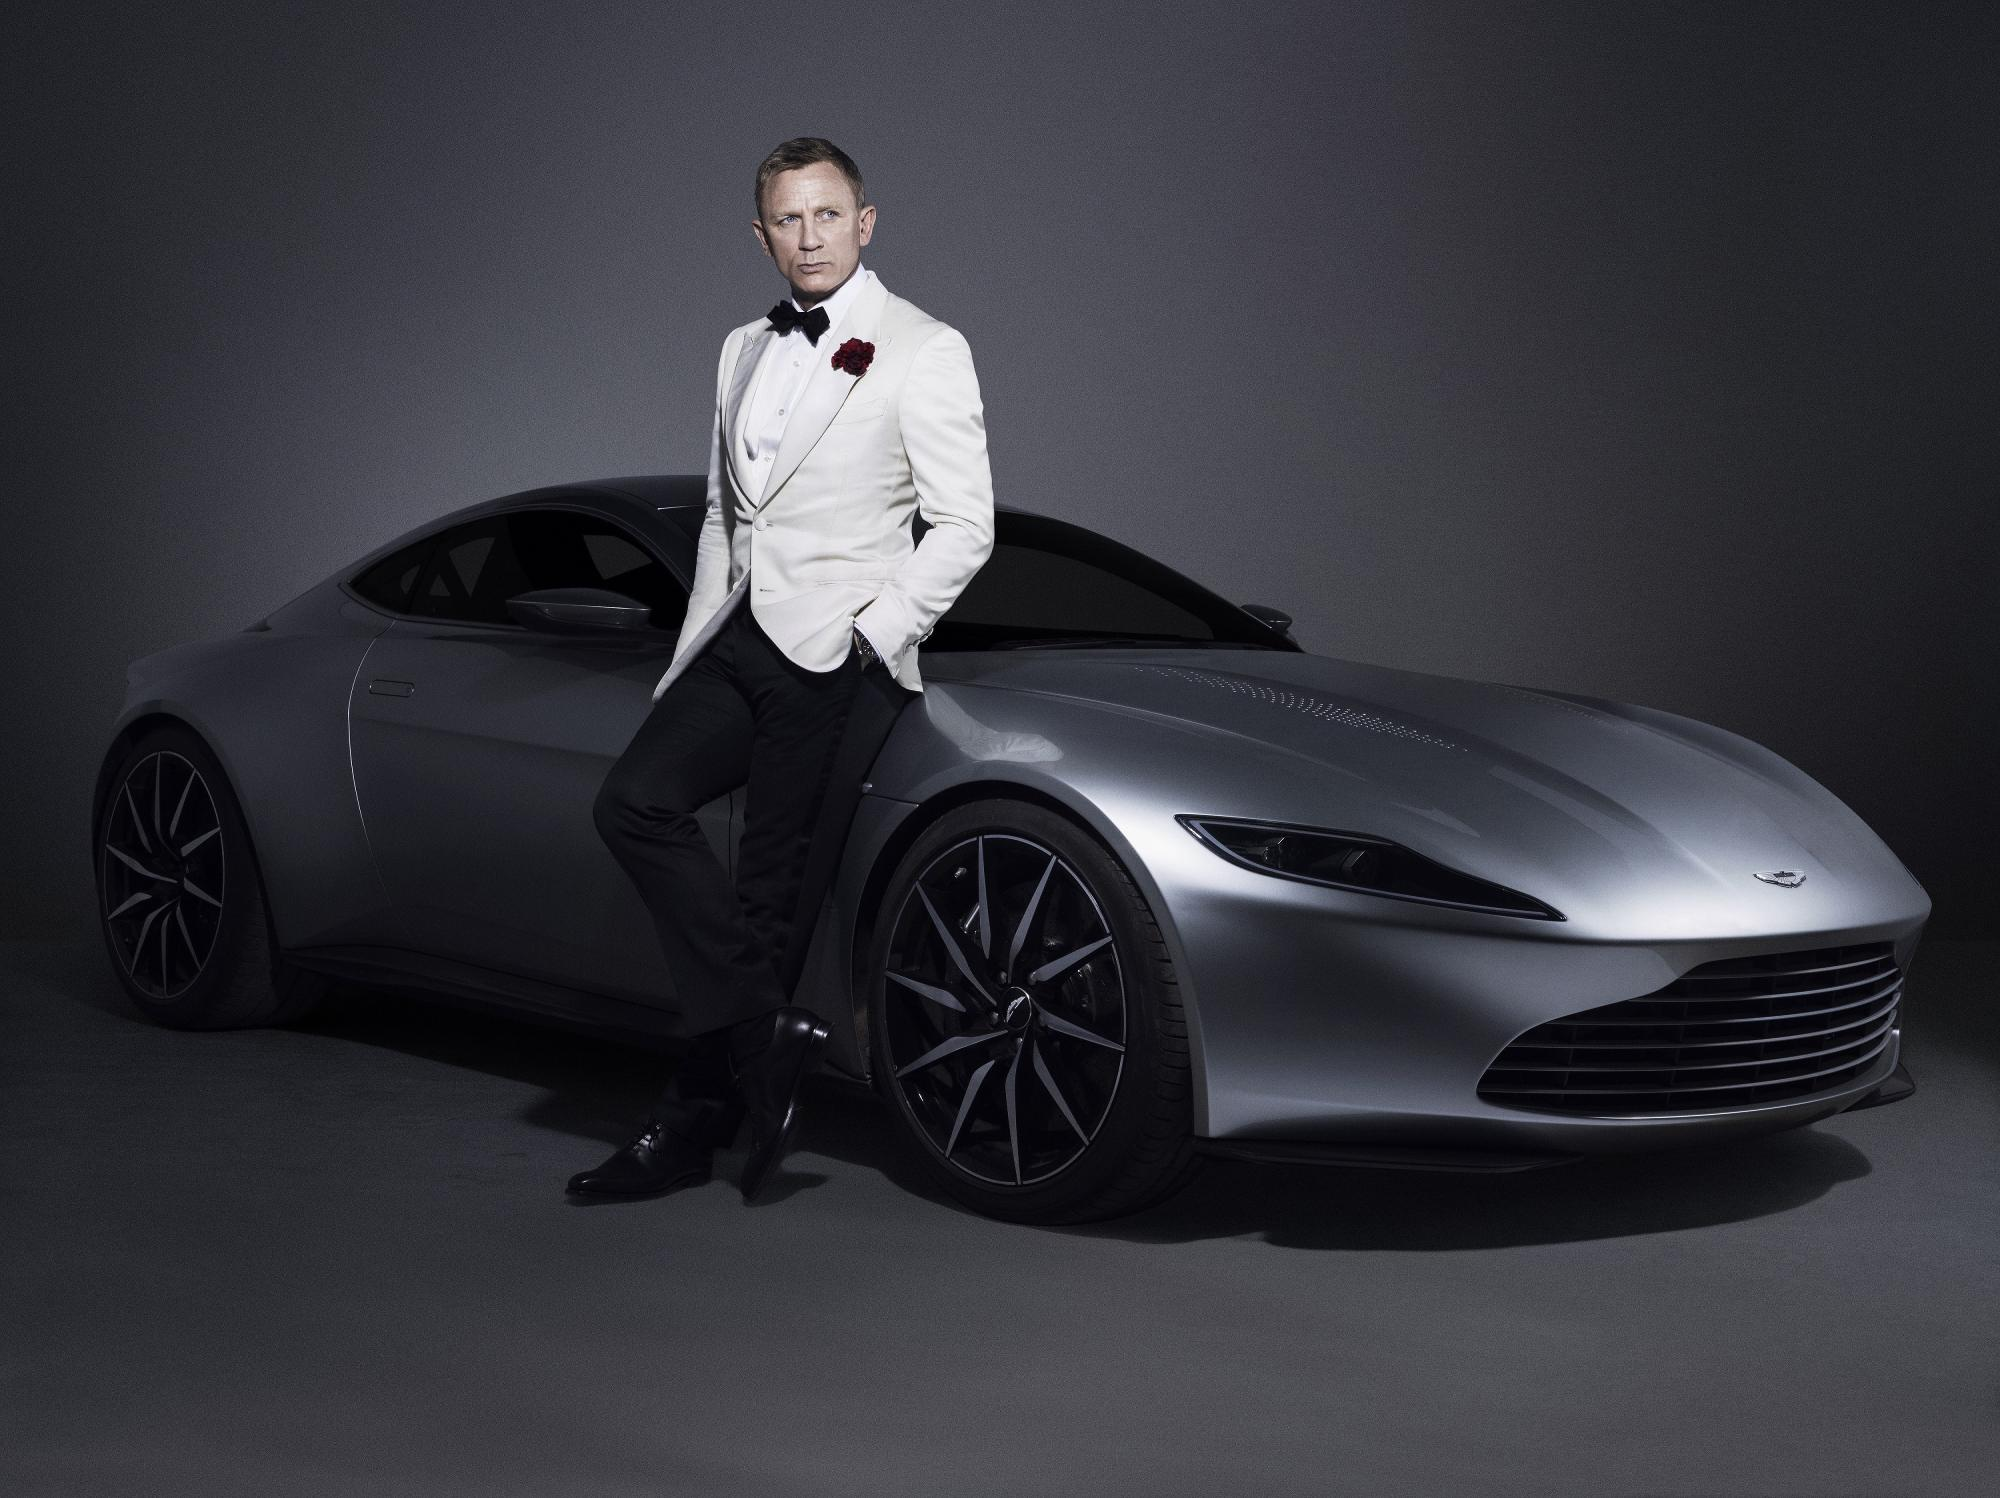 Aston Martin DB10 featured in Spectre with Daniel Craig.